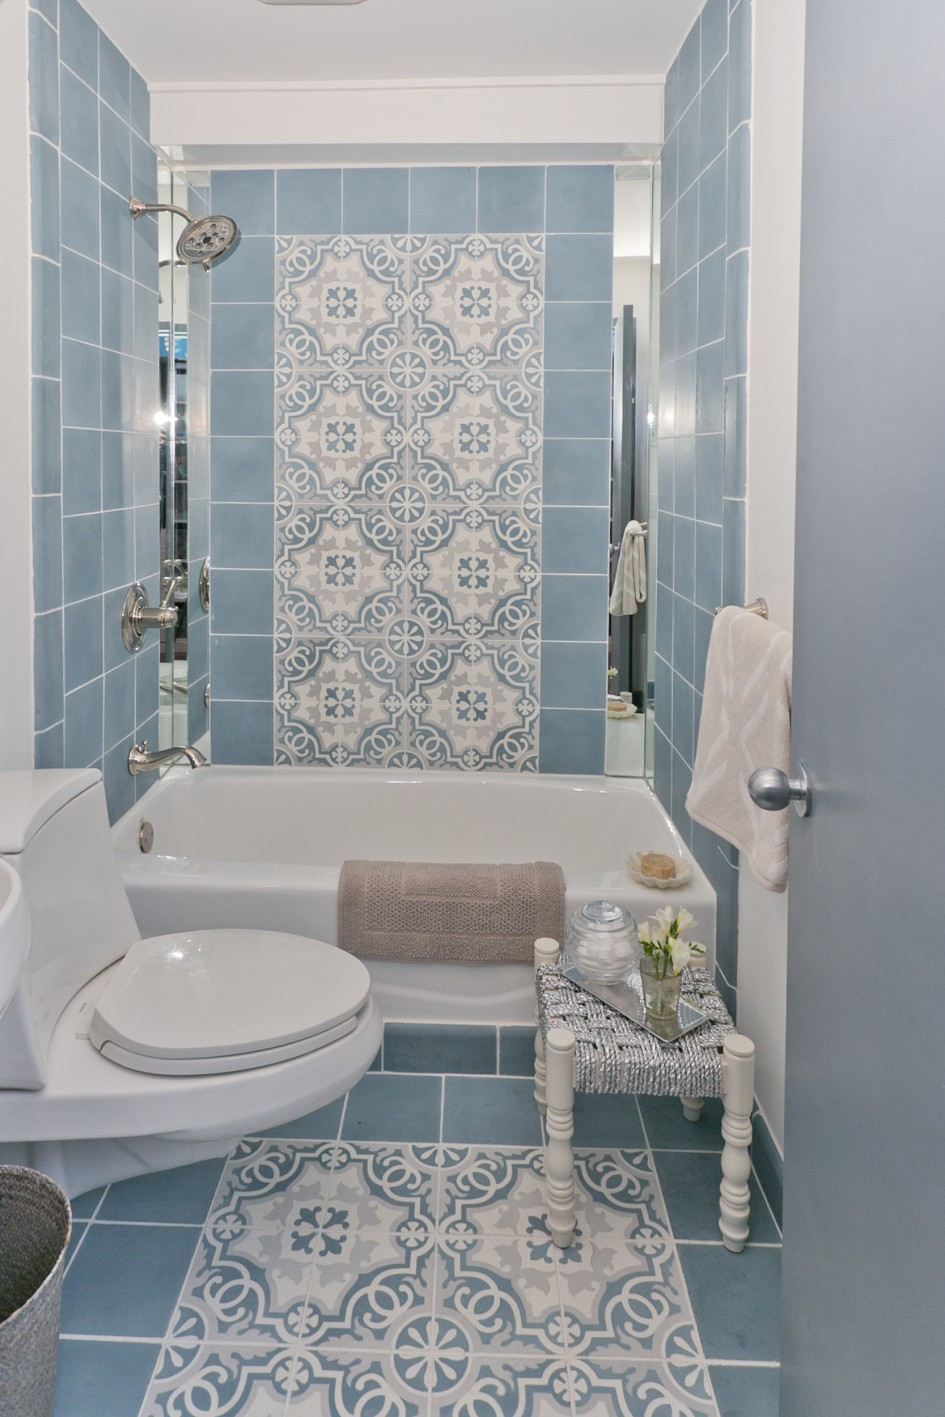 Bathroom designs pictures with tiles -  Beautiful Minimalist Blue Tile Pattern Bathroom Decor Also